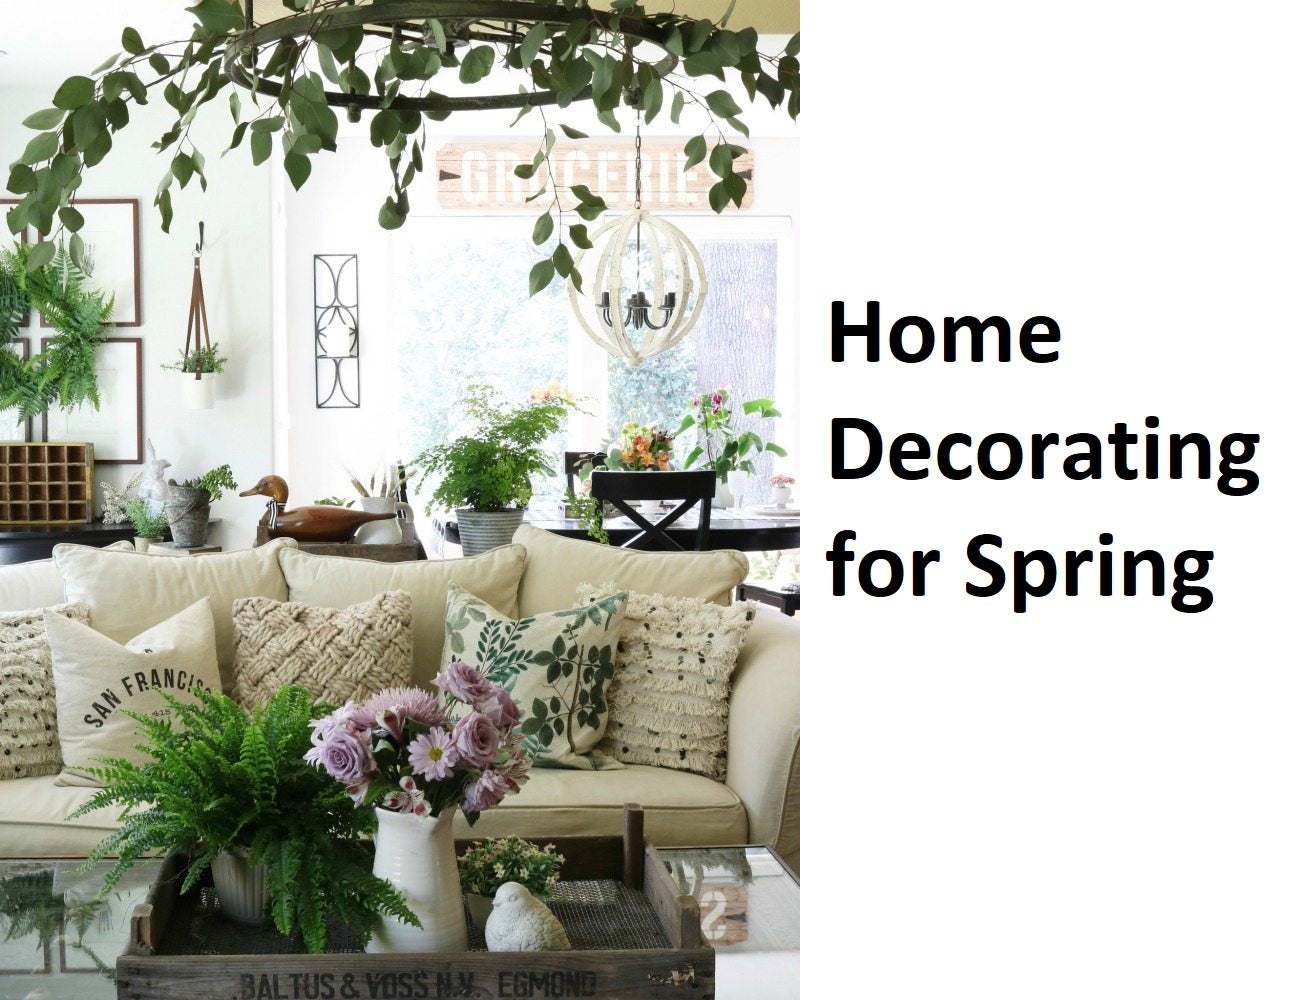 Home Decorating for Spring,spring decorating ideas 2021,spring decorating ideas 2020,spring home decor trends 2020,spring decorating ideas for office,spring home decor 2020,spring decor 2020,spring decor 2019,farmhouse spring decor